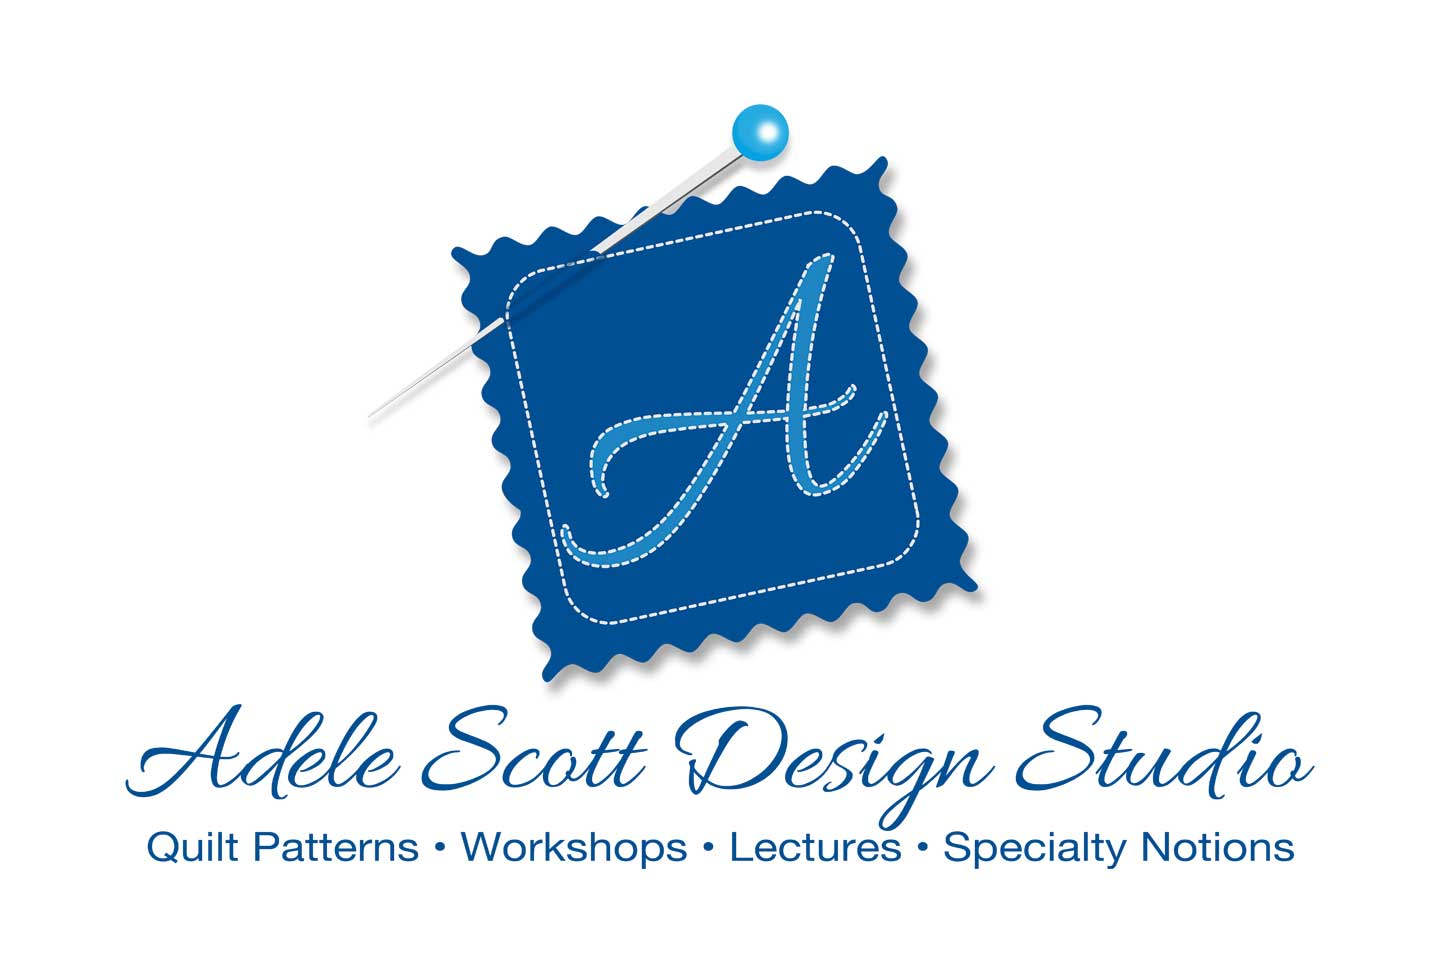 Adele Scott Design Studio